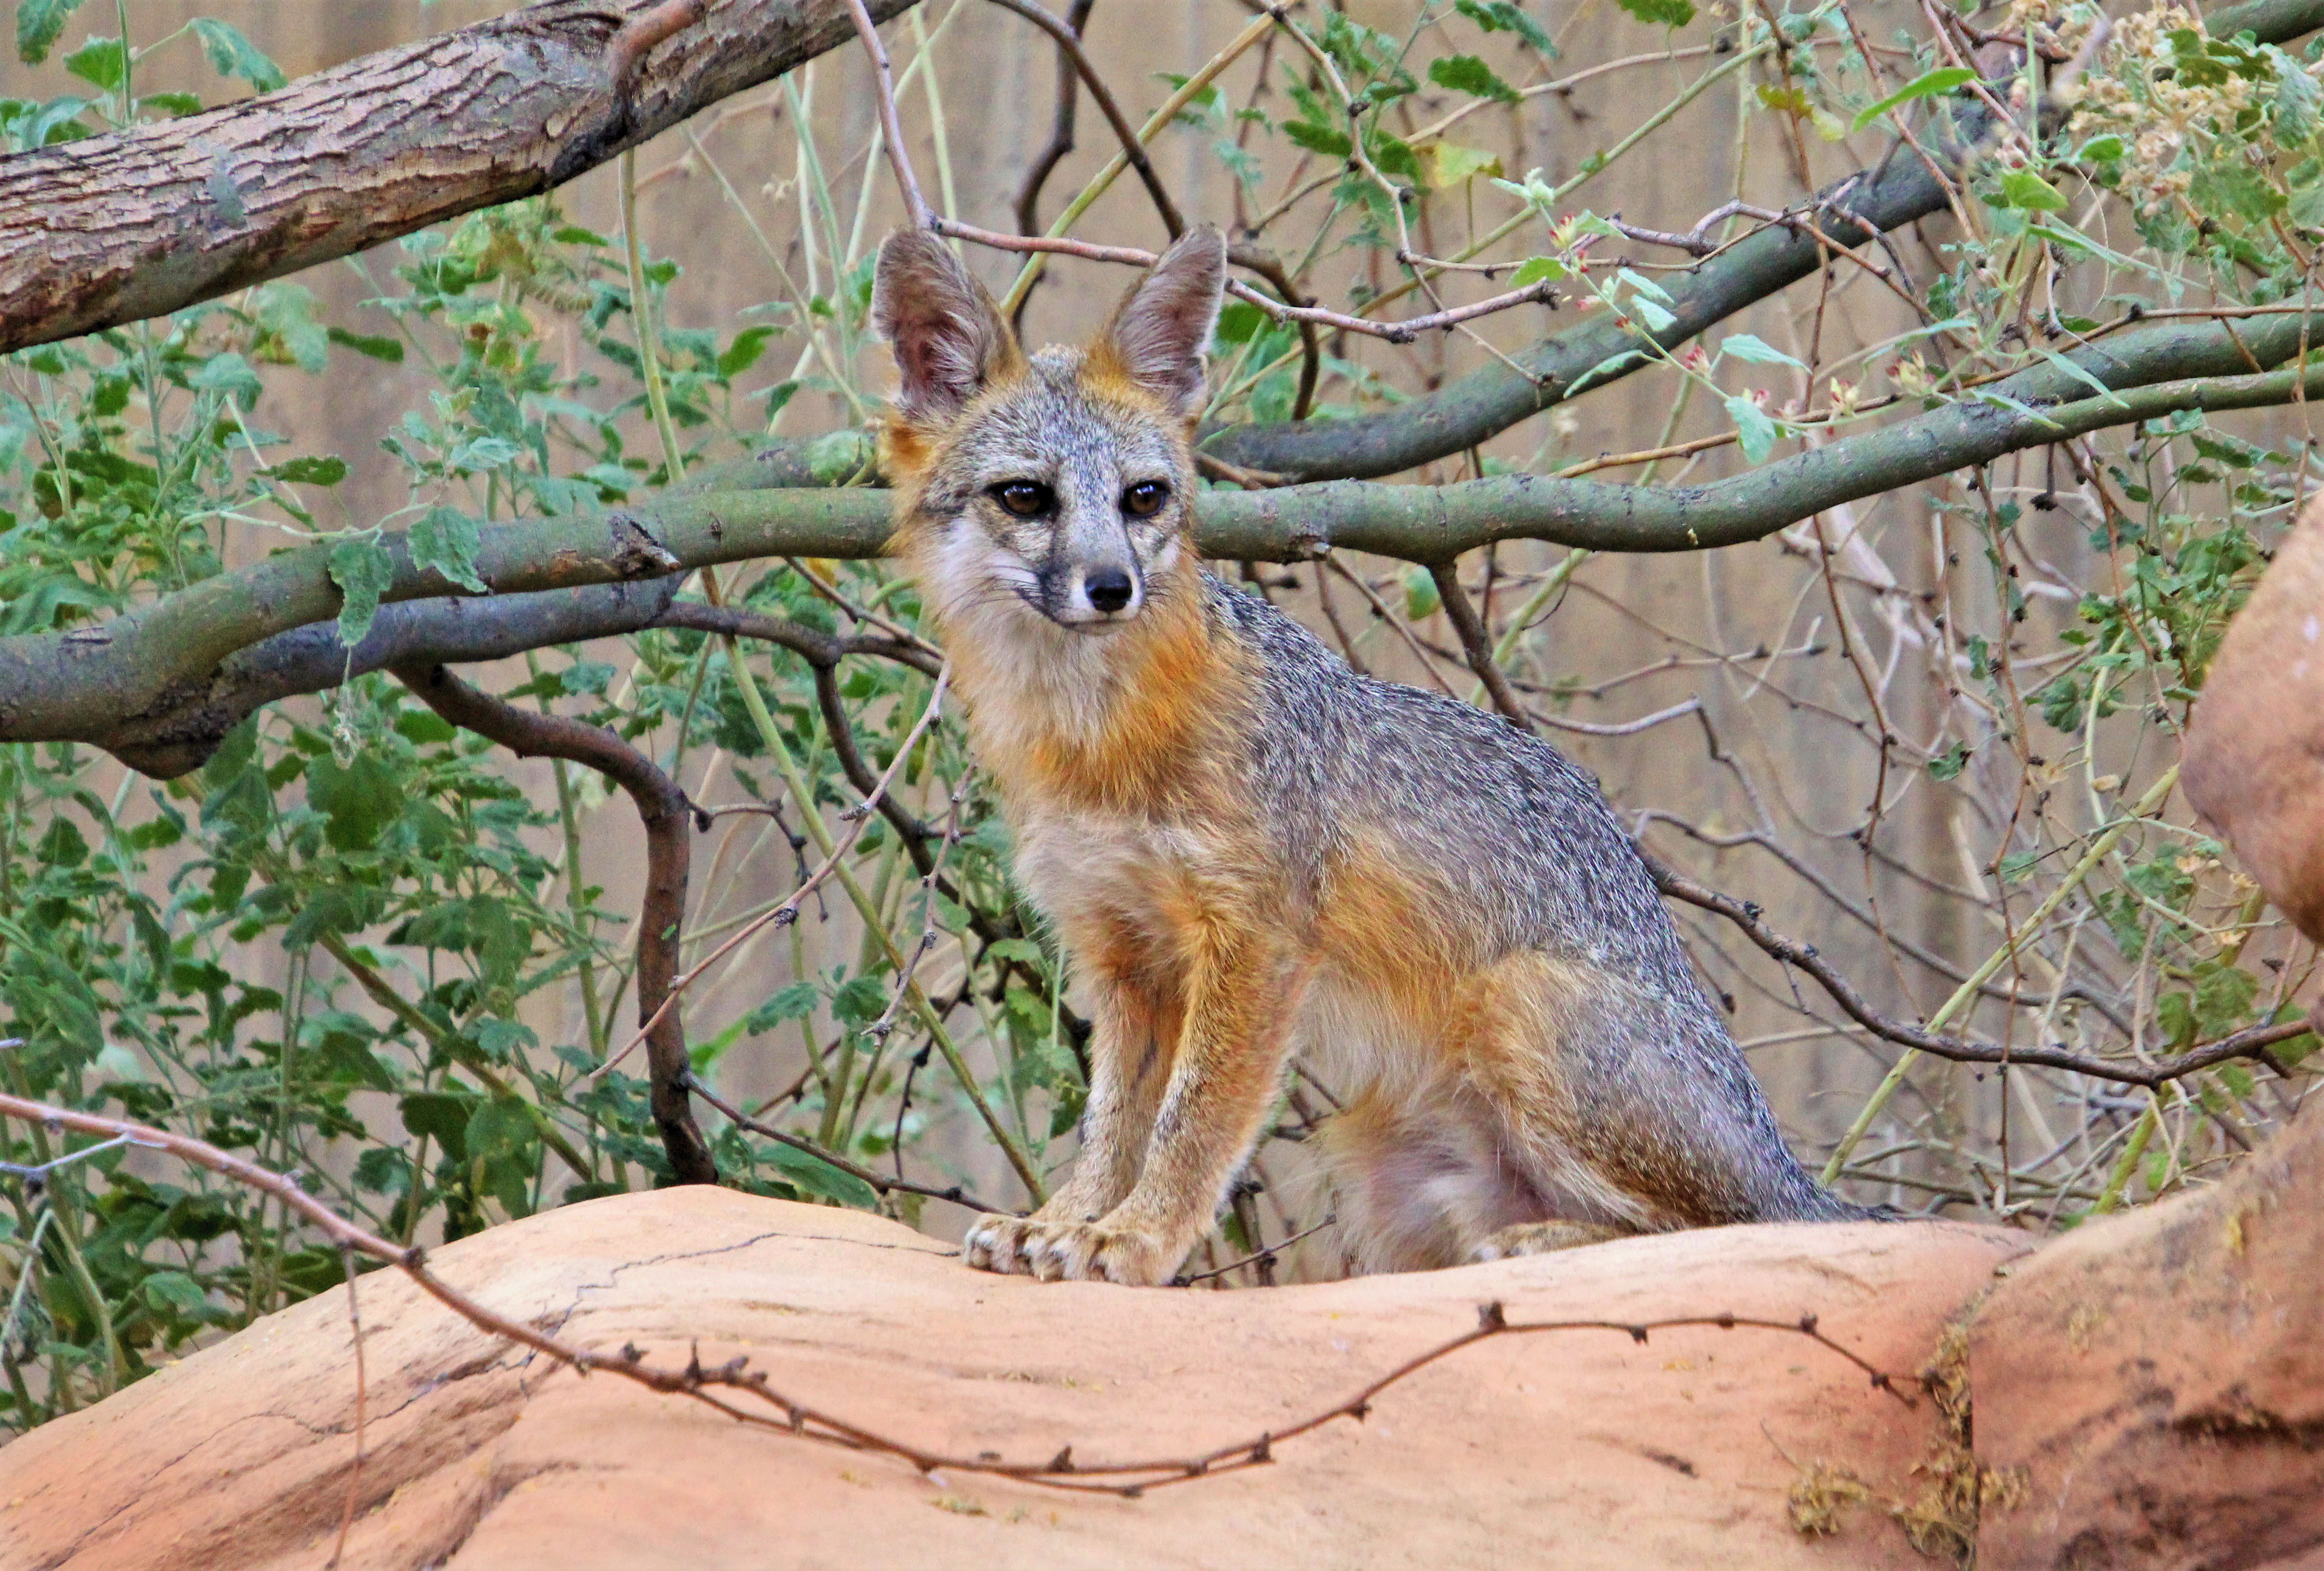 62704 download wallpaper Animals, Fox, Beast, Nice, Sweetheart, Rock, Stone screensavers and pictures for free